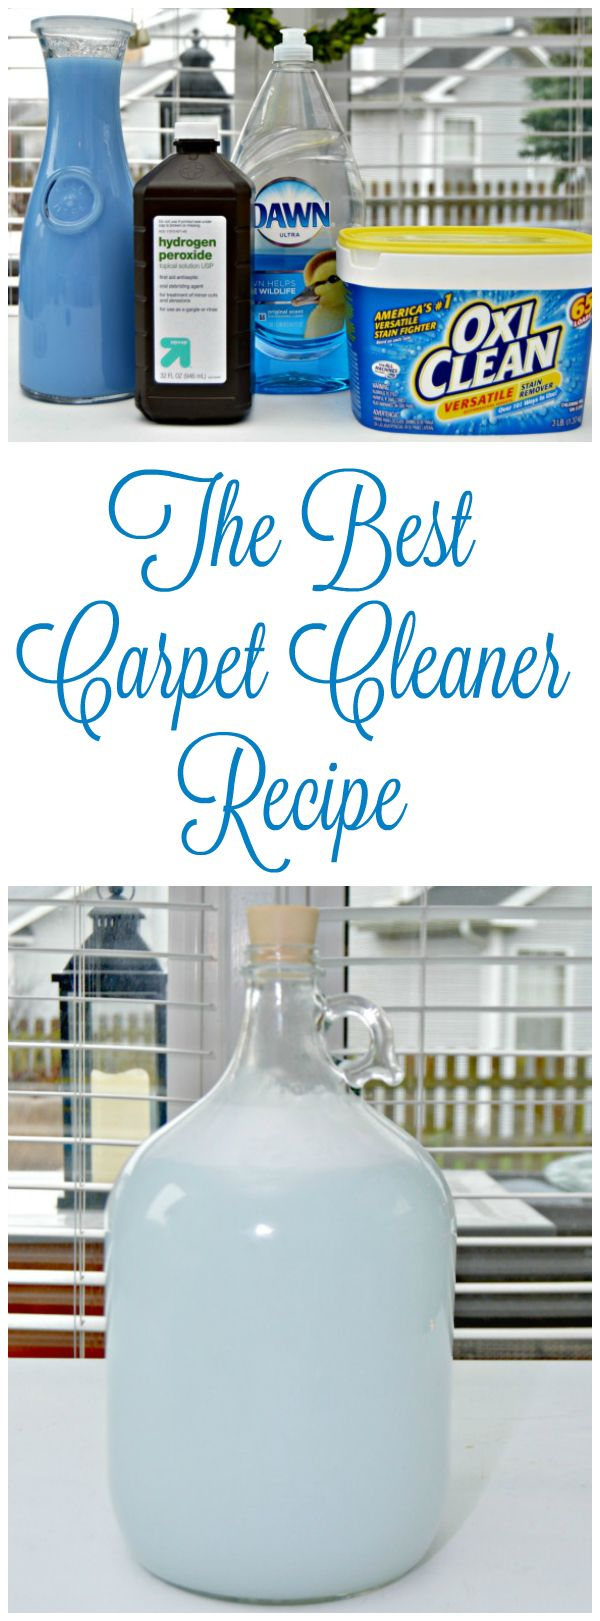 best 25 upholstery cleaner ideas on pinterest carpet and upholstery cleaner diy carpet. Black Bedroom Furniture Sets. Home Design Ideas